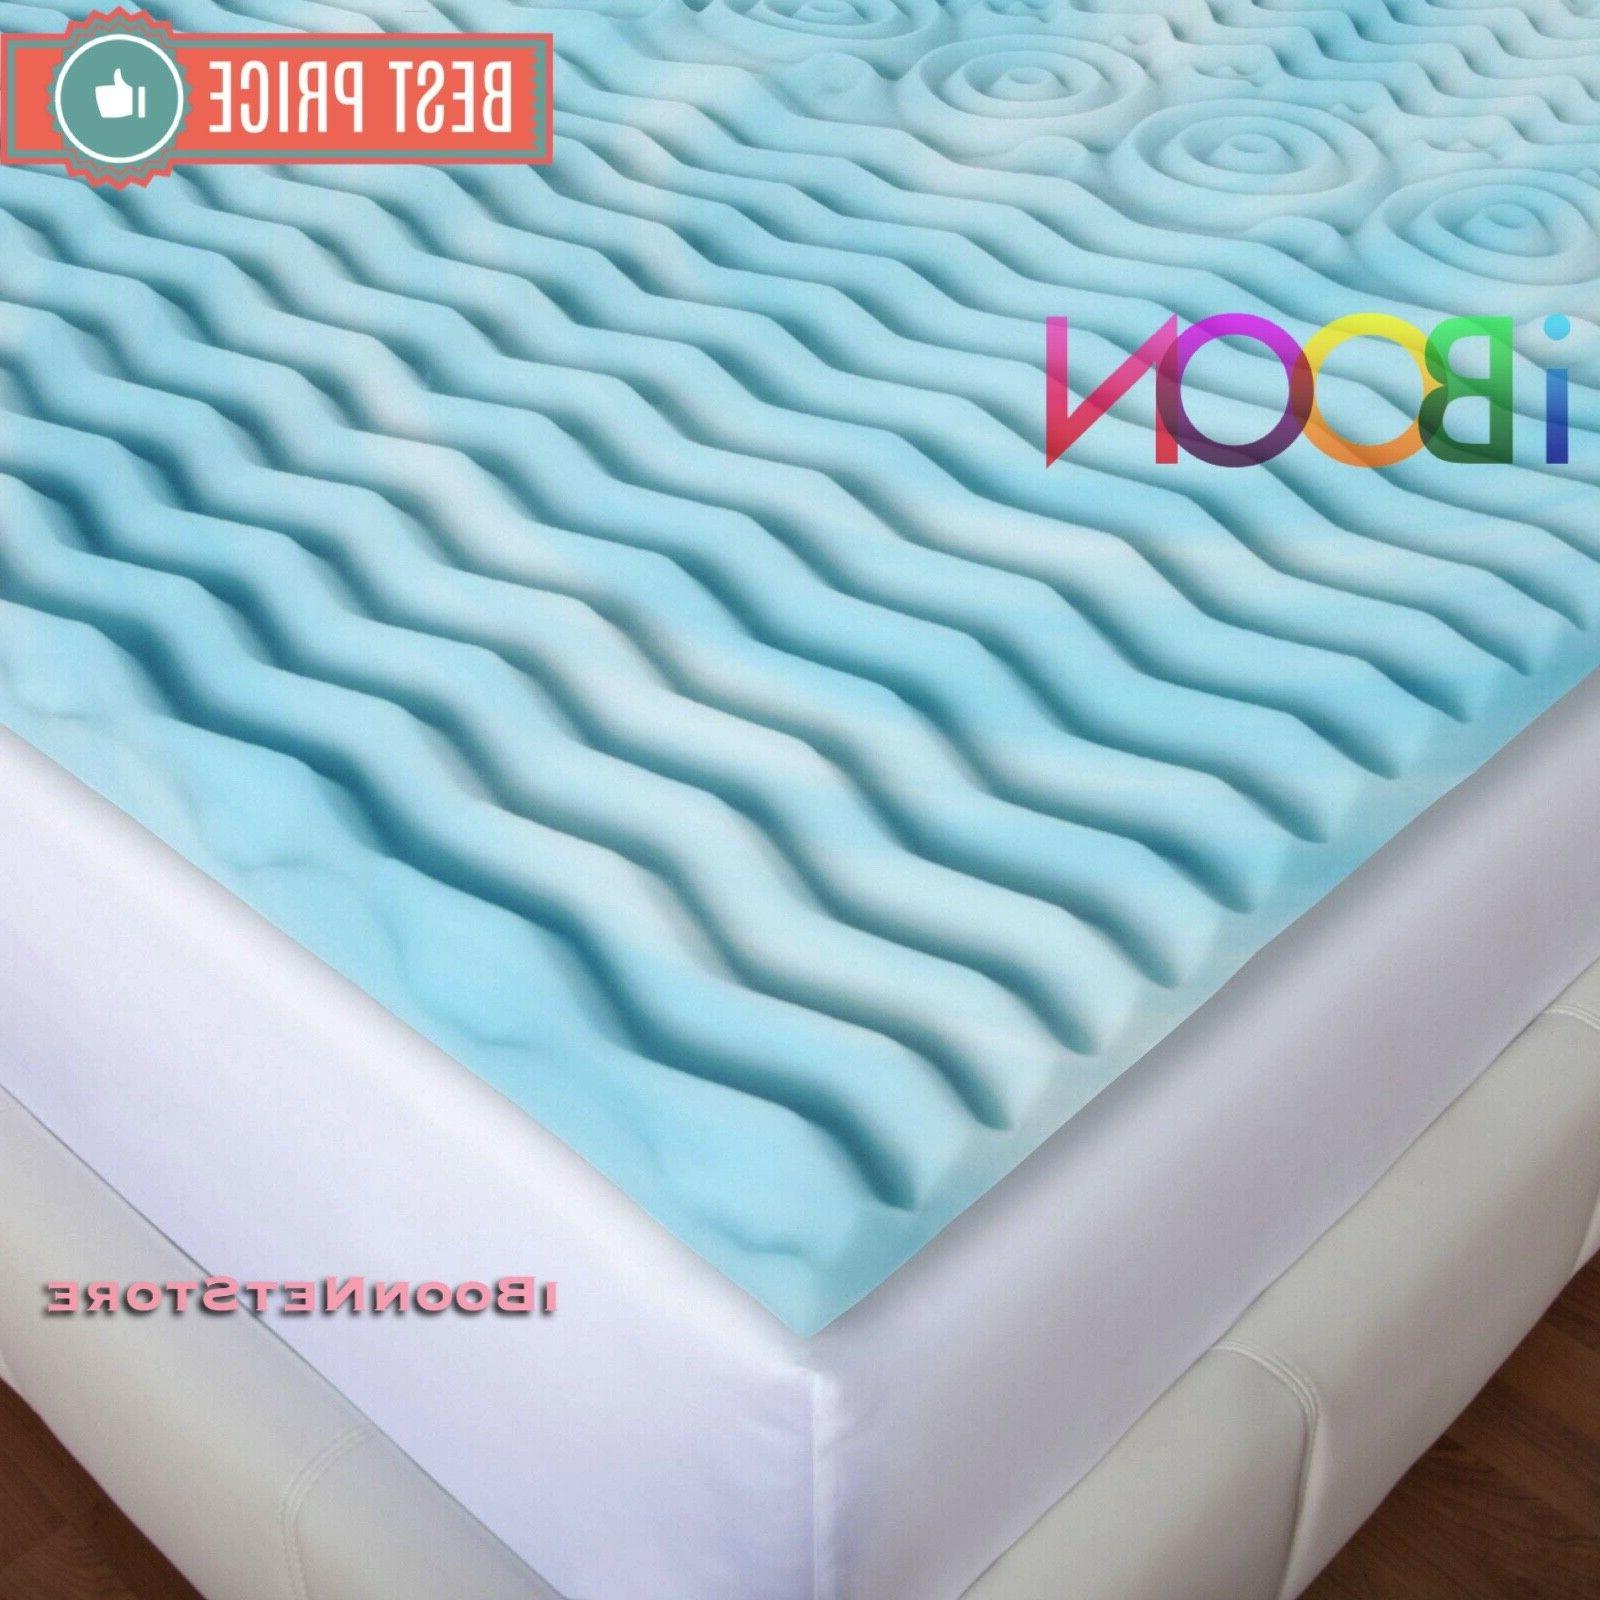 Orthopedic 3 INCH Memory Foam Topper Queen Size Gel Pad Bed Cover